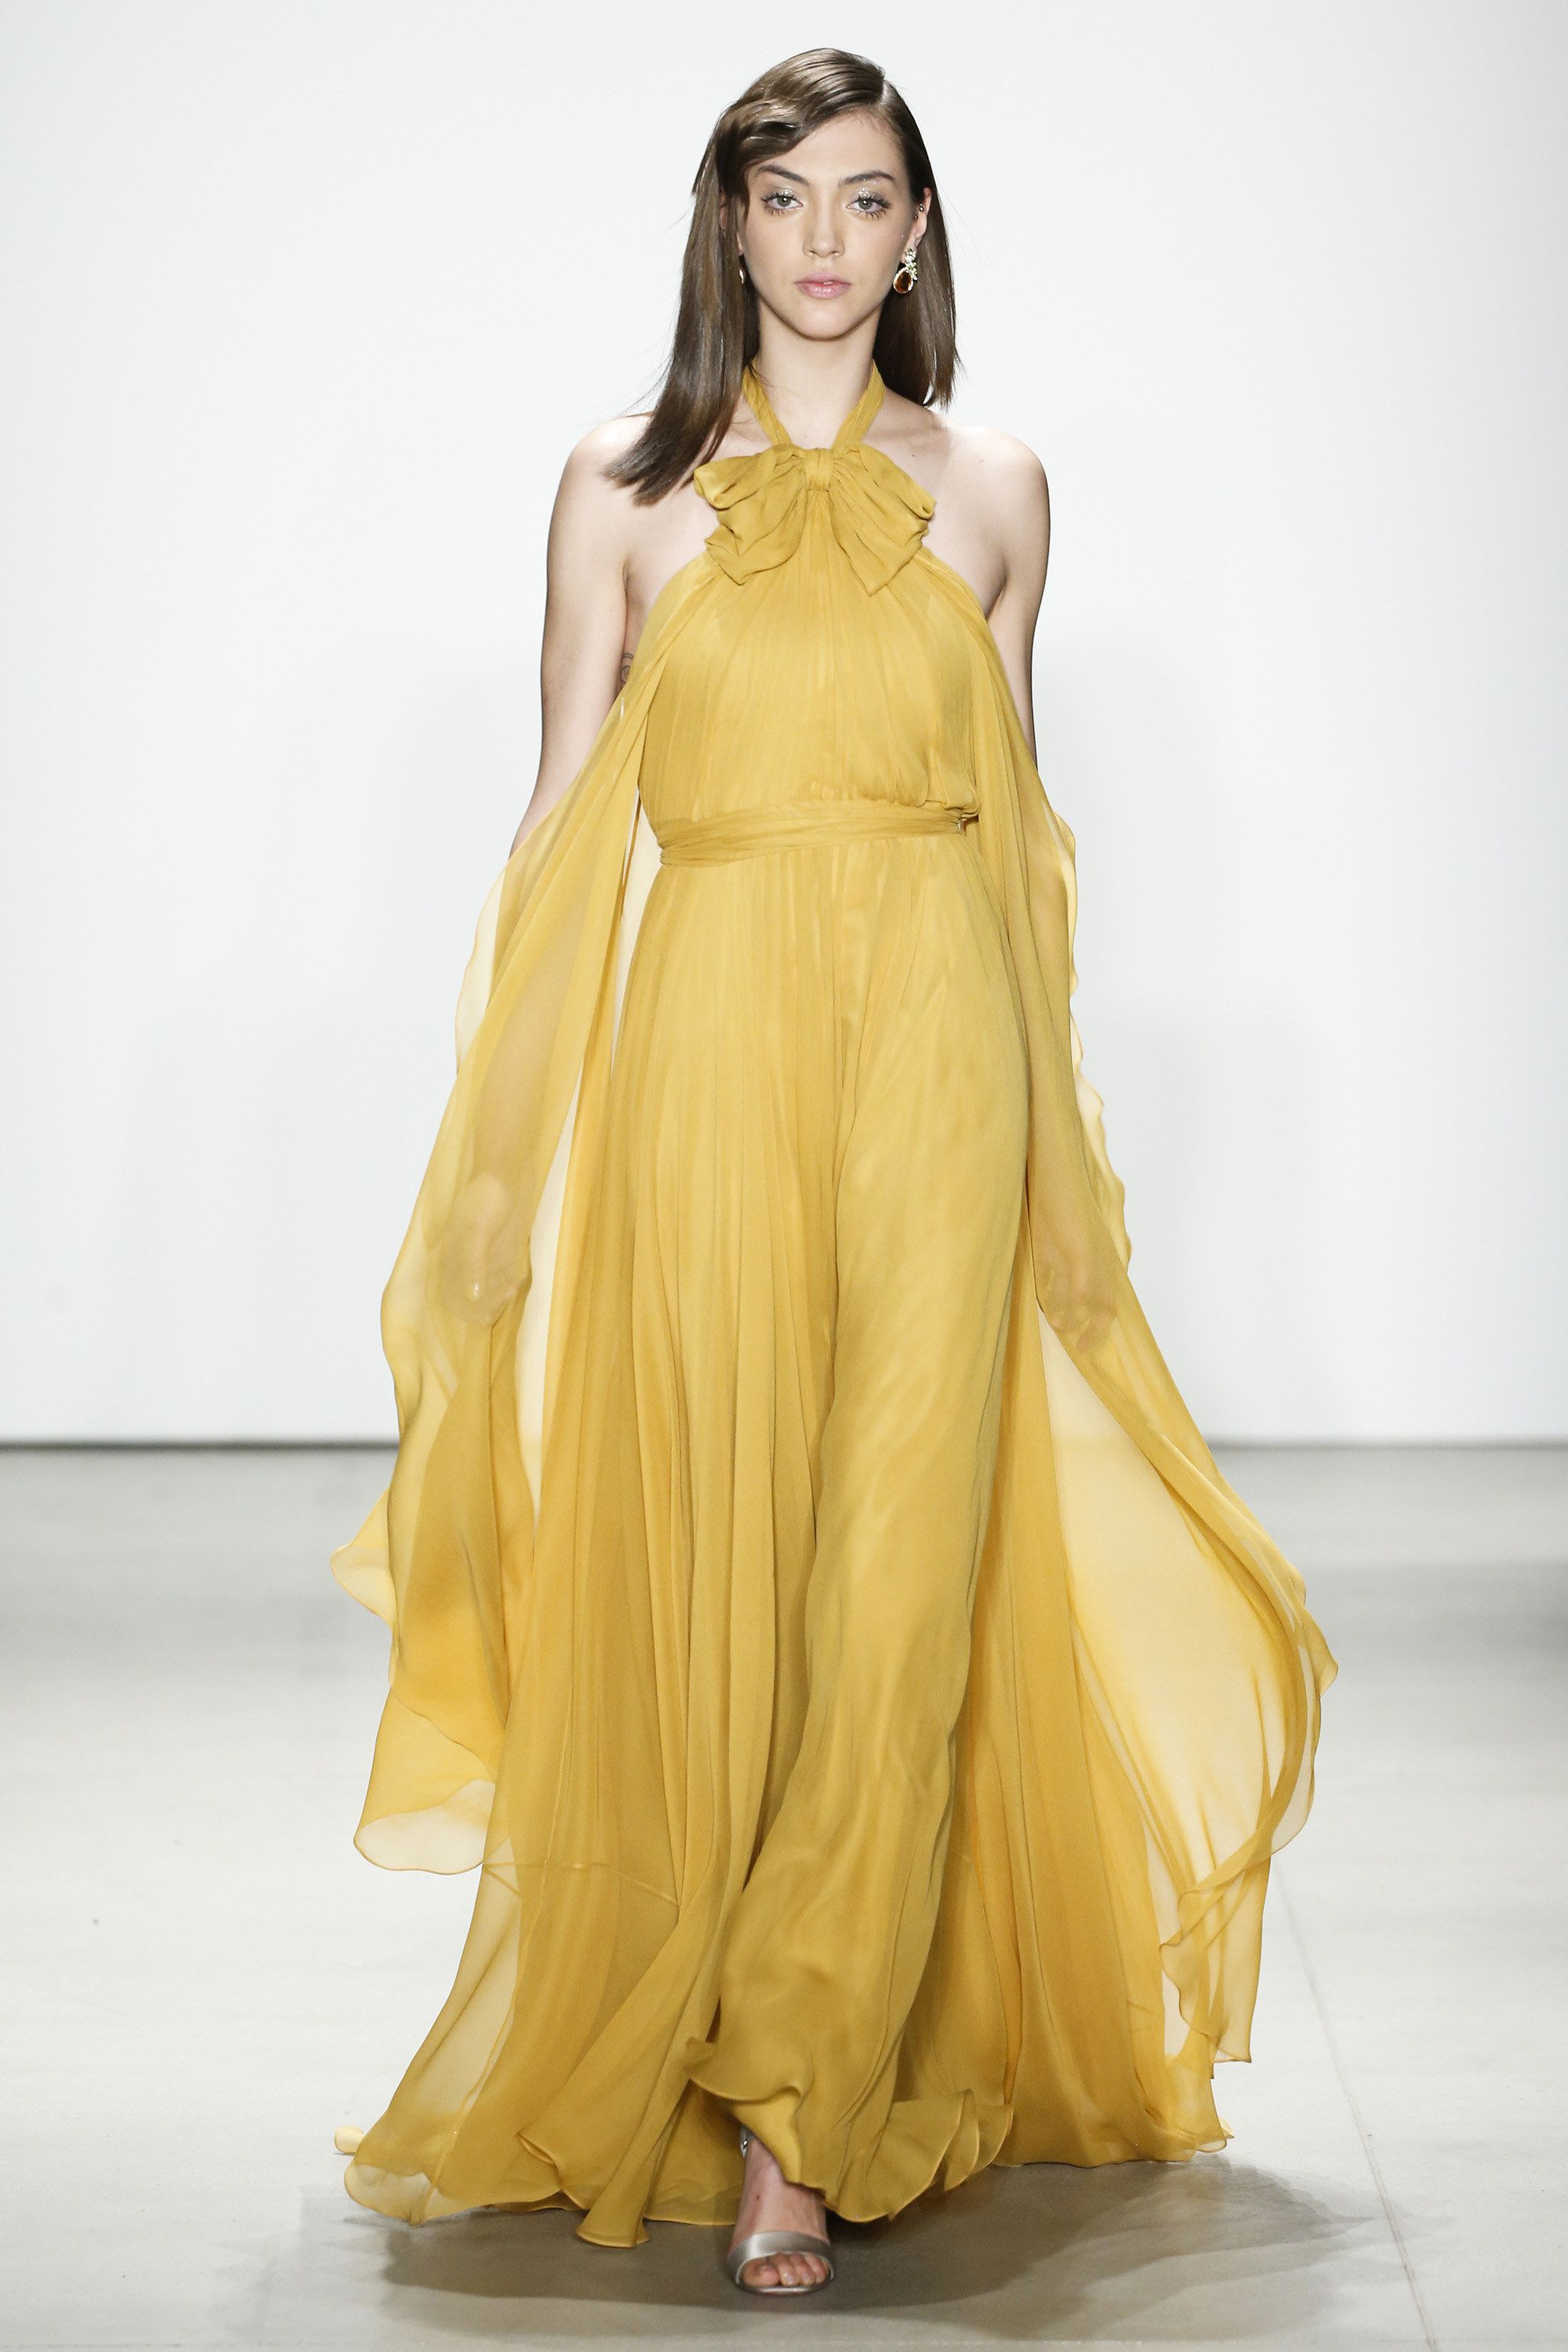 3801c8c83f37 Jenny Packham Fall 2016 Ready-to-Wear Fashion Show  http   www.theclosetfeminist.ca  ...